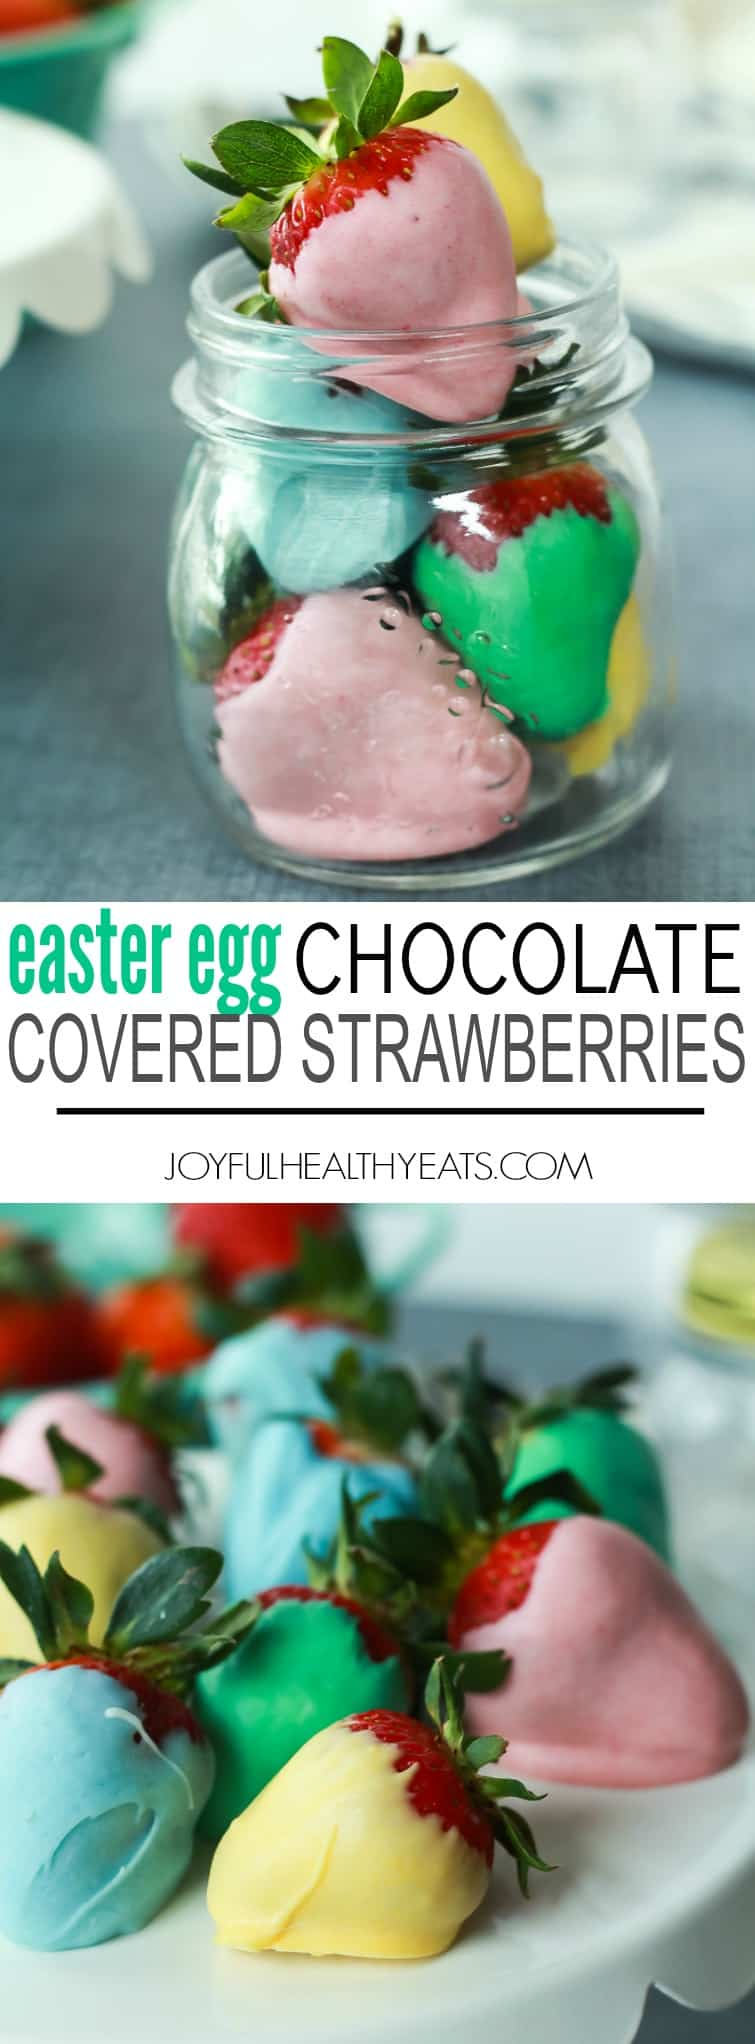 Easter egg chocolate covered strawberries recipe easy healthy recipes easter egg chocolate covered strawberries recipe using three ingredients a fun festive dessert to make forumfinder